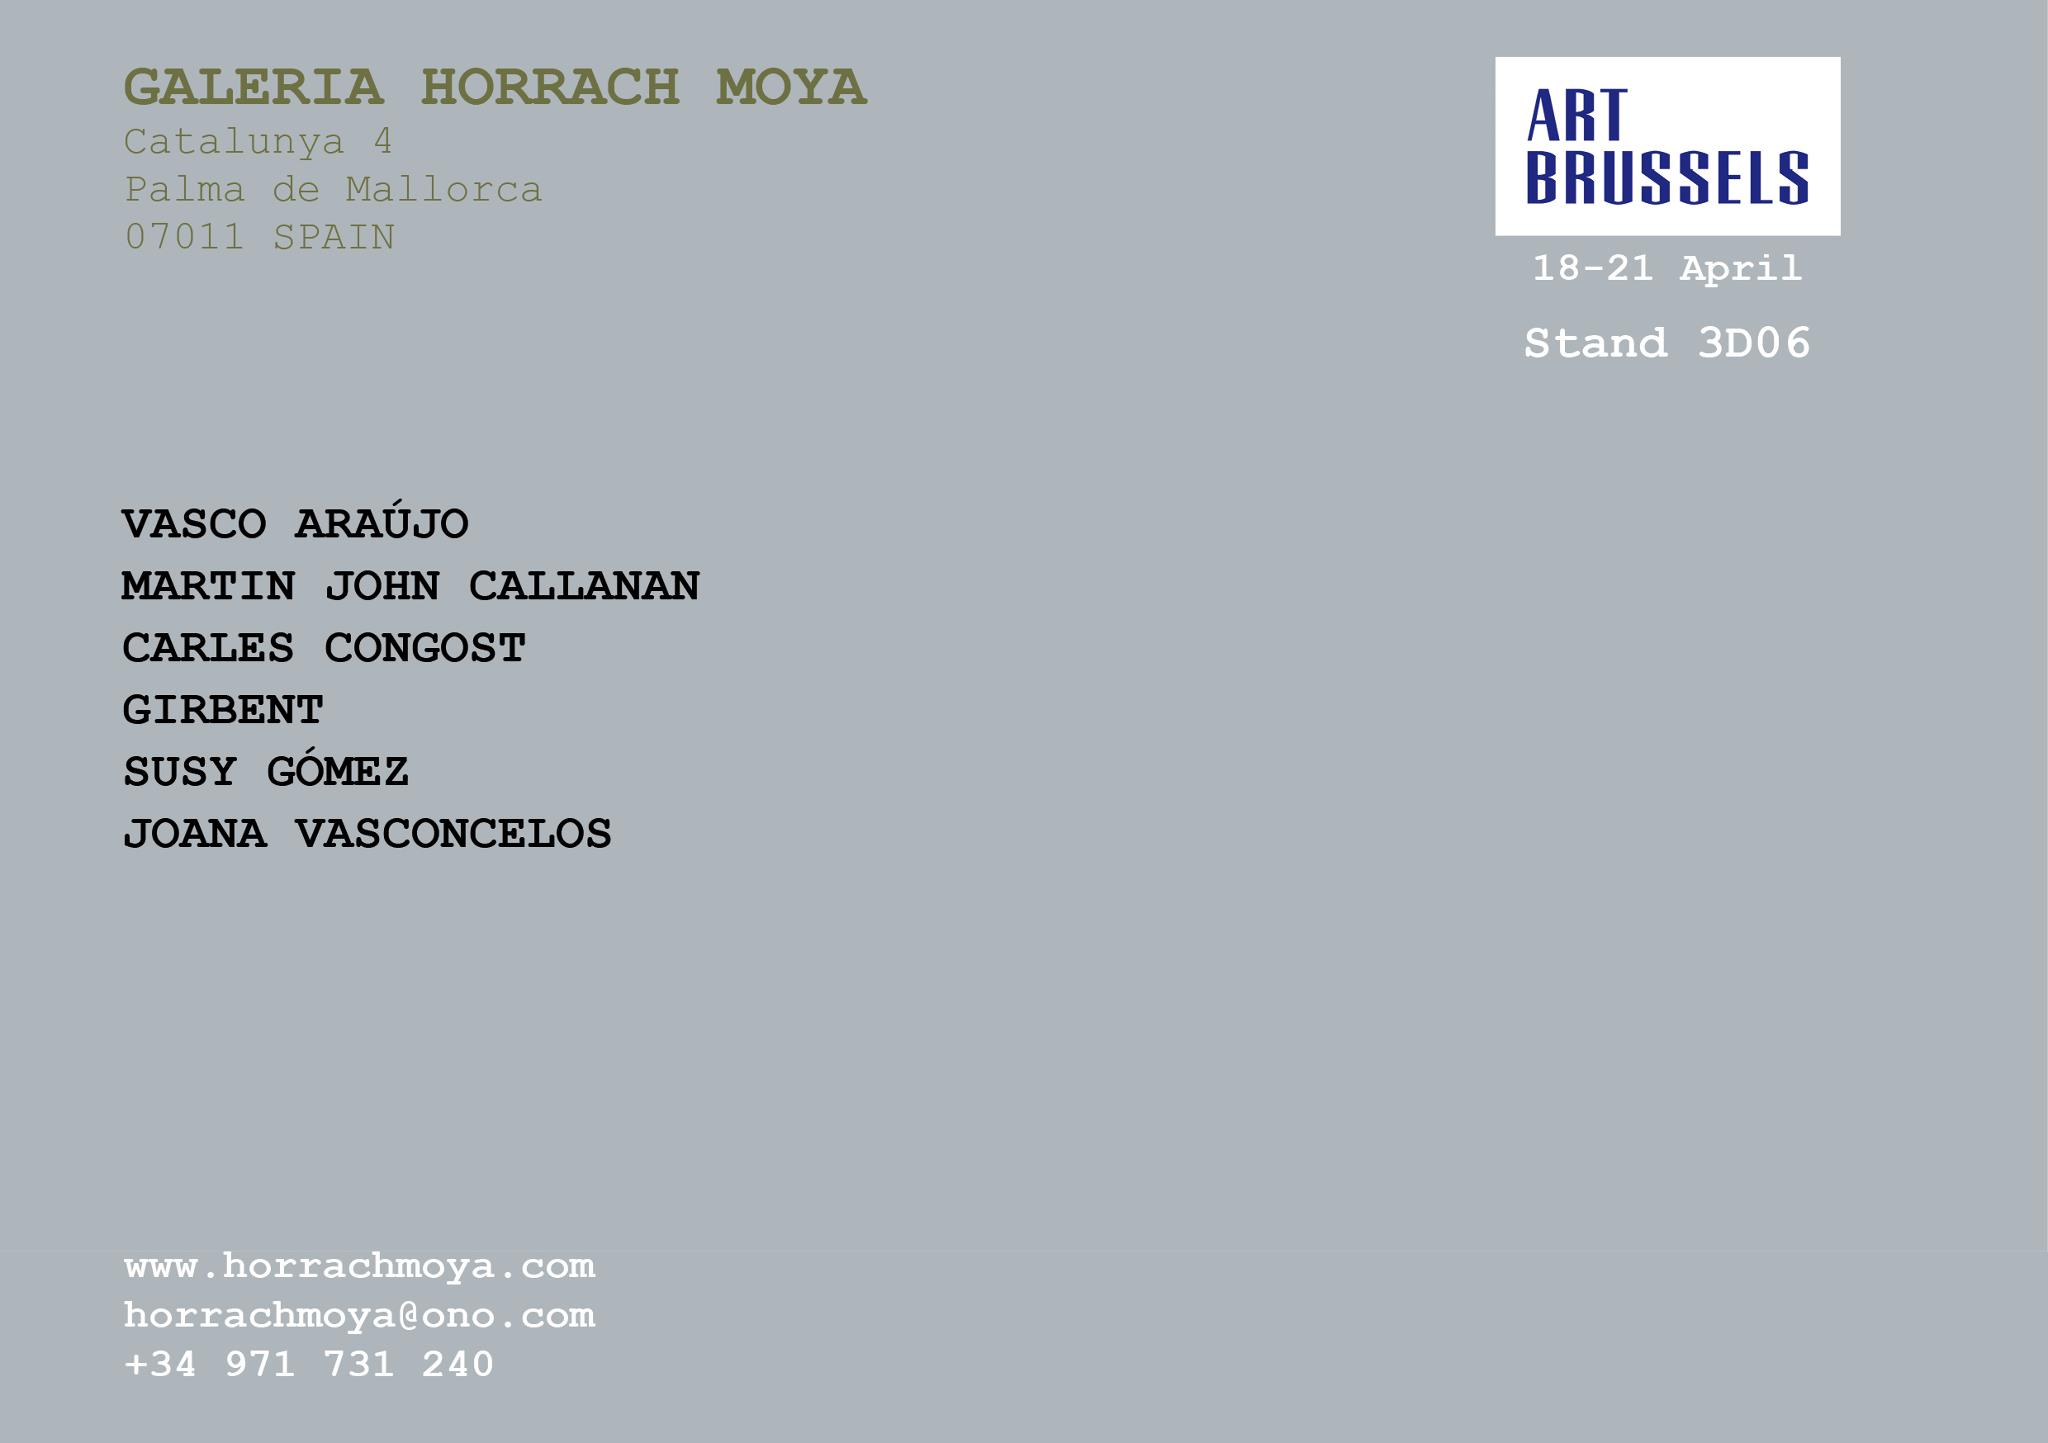 horrach moya art brussels